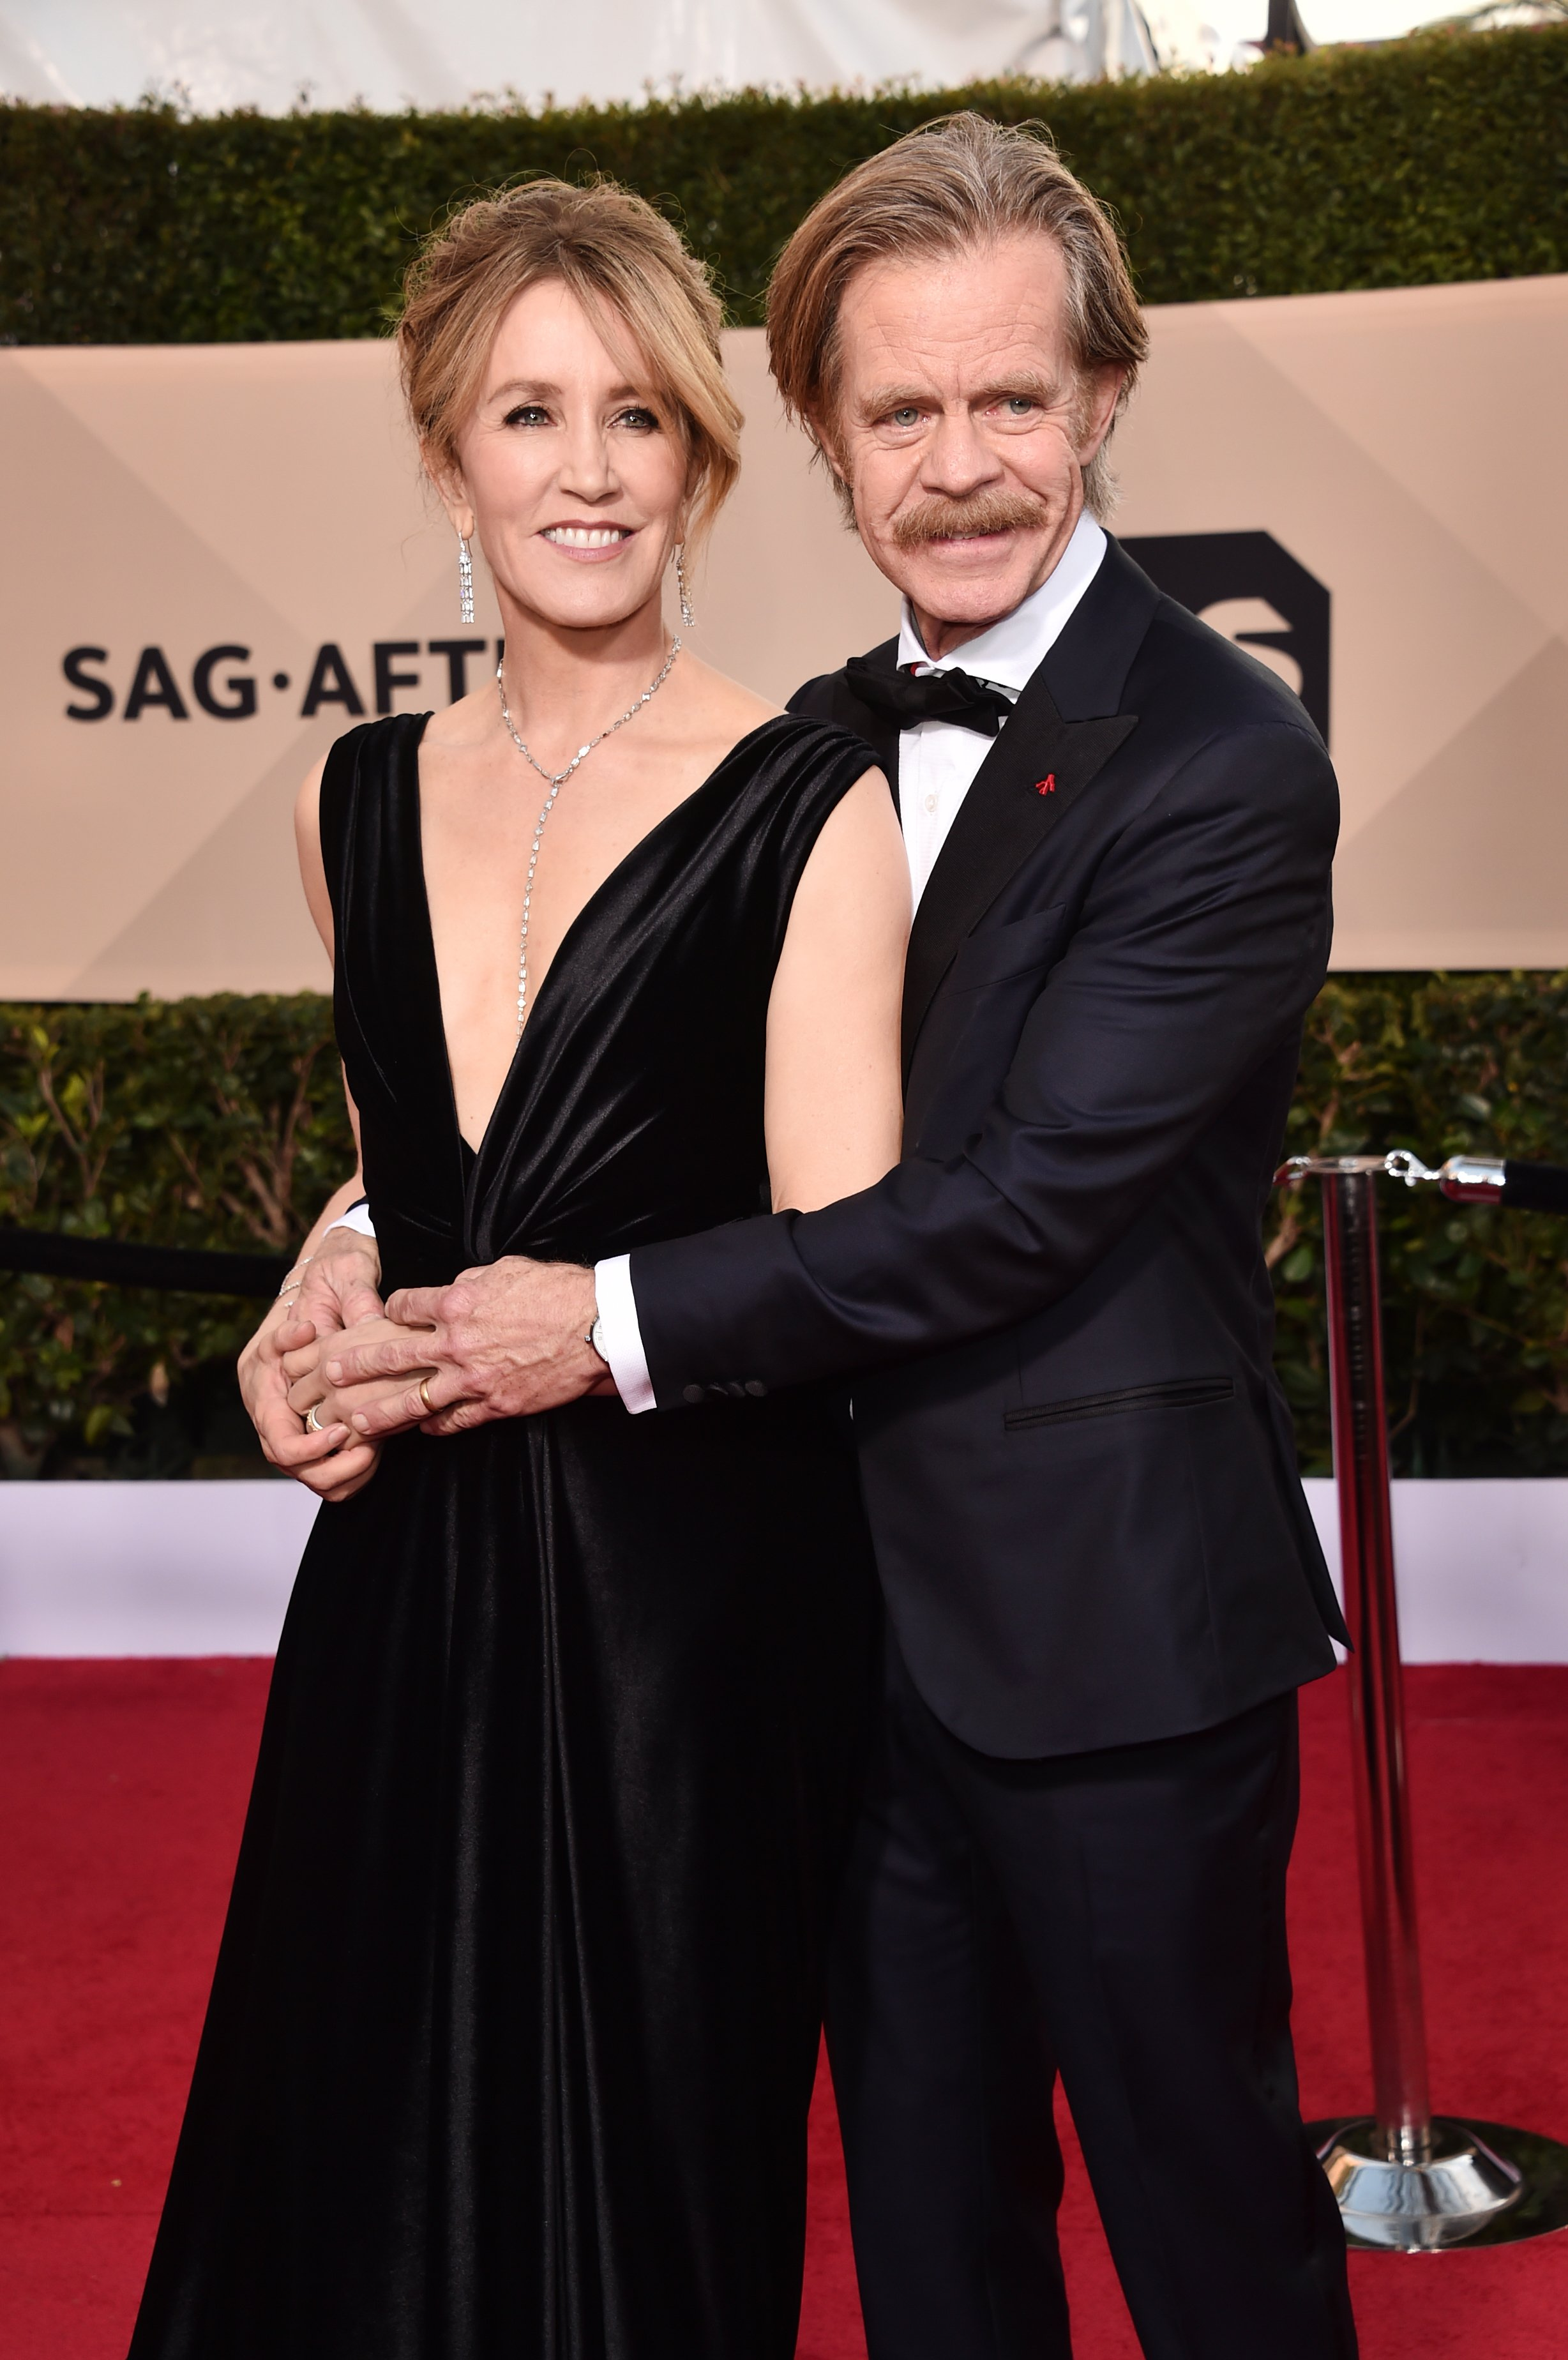 Felicity Huffman and William H. Macy at the 24th Annual Screen Actors Guild Awards on January 21, 2018 | Photo: GettyImages